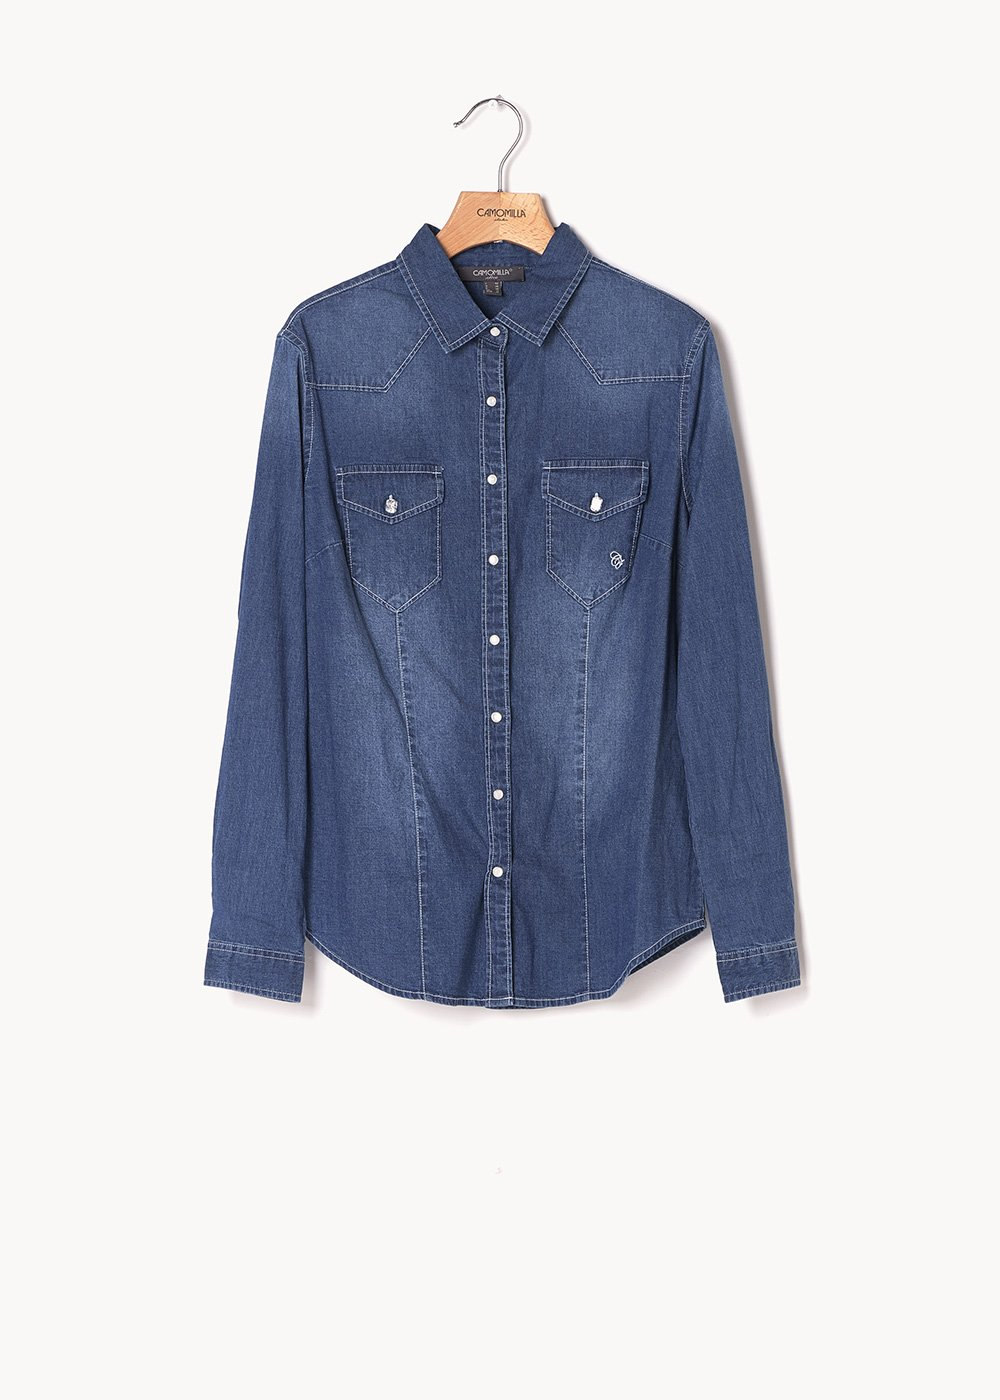 Caty denim shirt with jewel buttons - Dark Denim - Woman